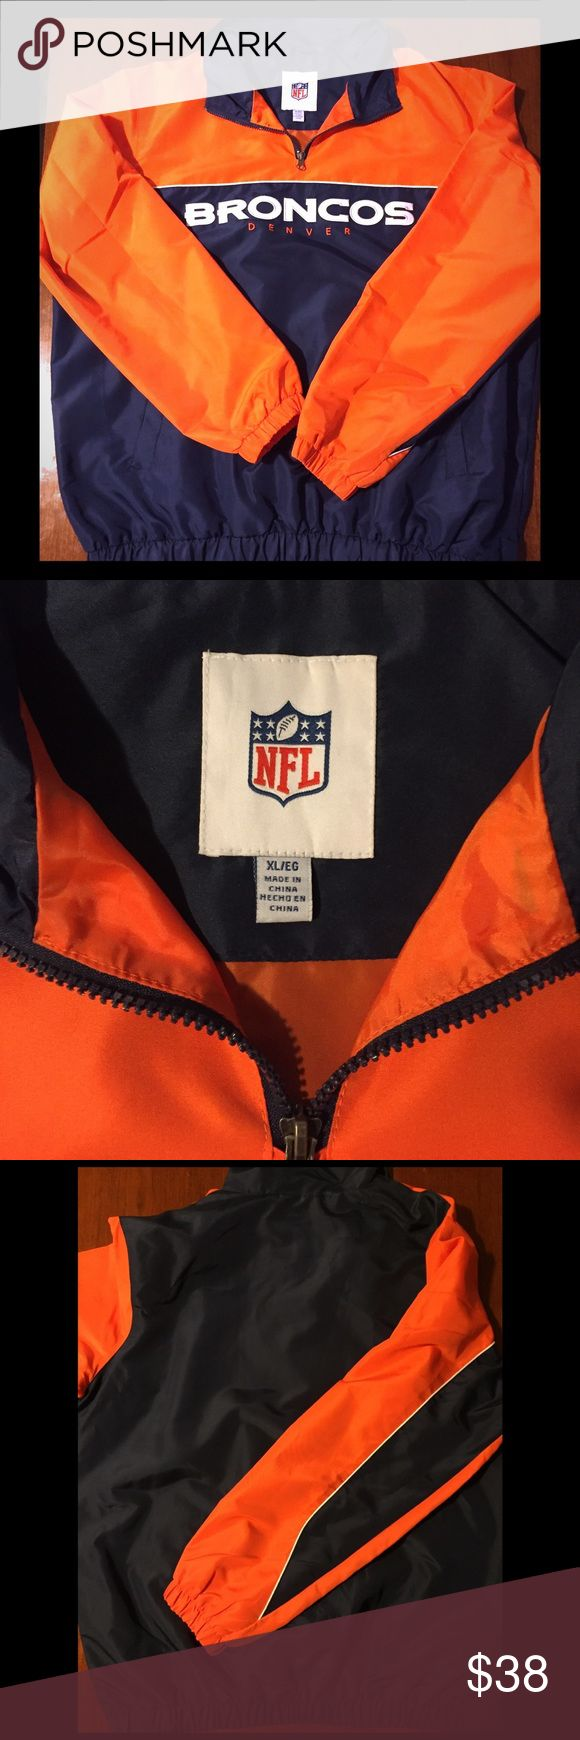 ‼️🏈TOUCHDOWN SALE‼️Denver Broncos Pullover Jacket Brand New NEVER Worn Denver Broncos pullover Jacket                                                                                        -Shell 100% Polyester.                                                             -Lining 100 % Polyester.                                                             Team name embroidered on the front. Product of the NFL. Side zipper for added ease to put on and remove jacket. Very warm but lightweight…